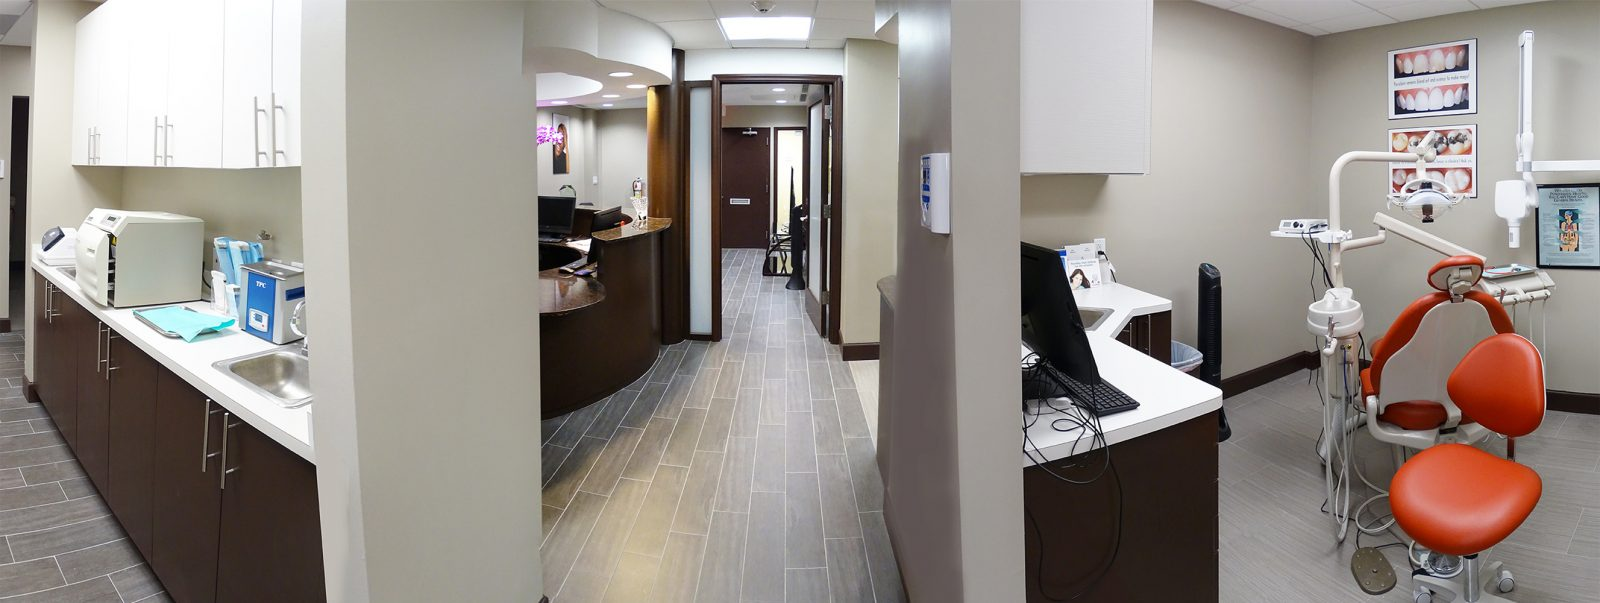 Office Gorbatov Dentistry Your Dentist In Hollywood